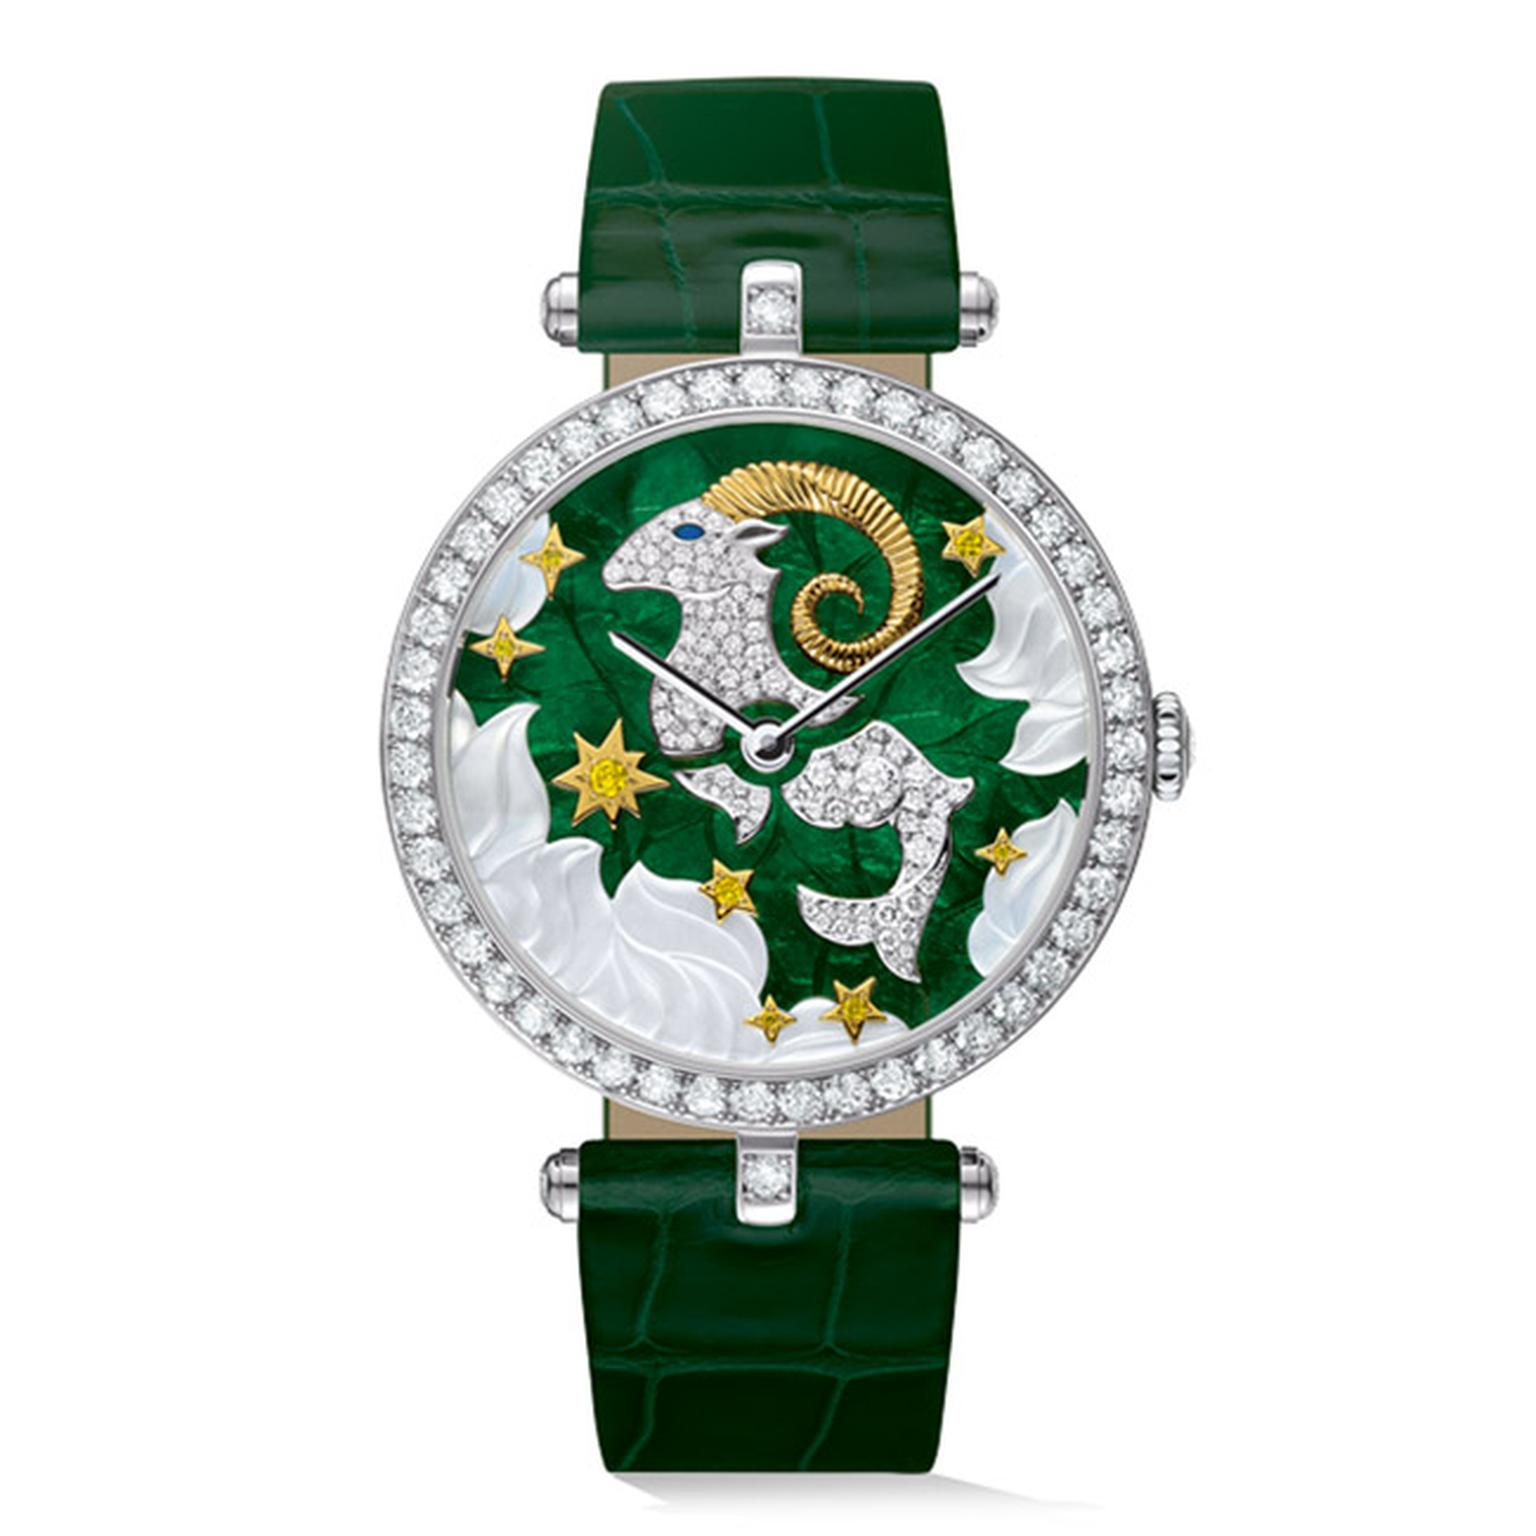 Van-Cleef-Capricorn-Watch-Main